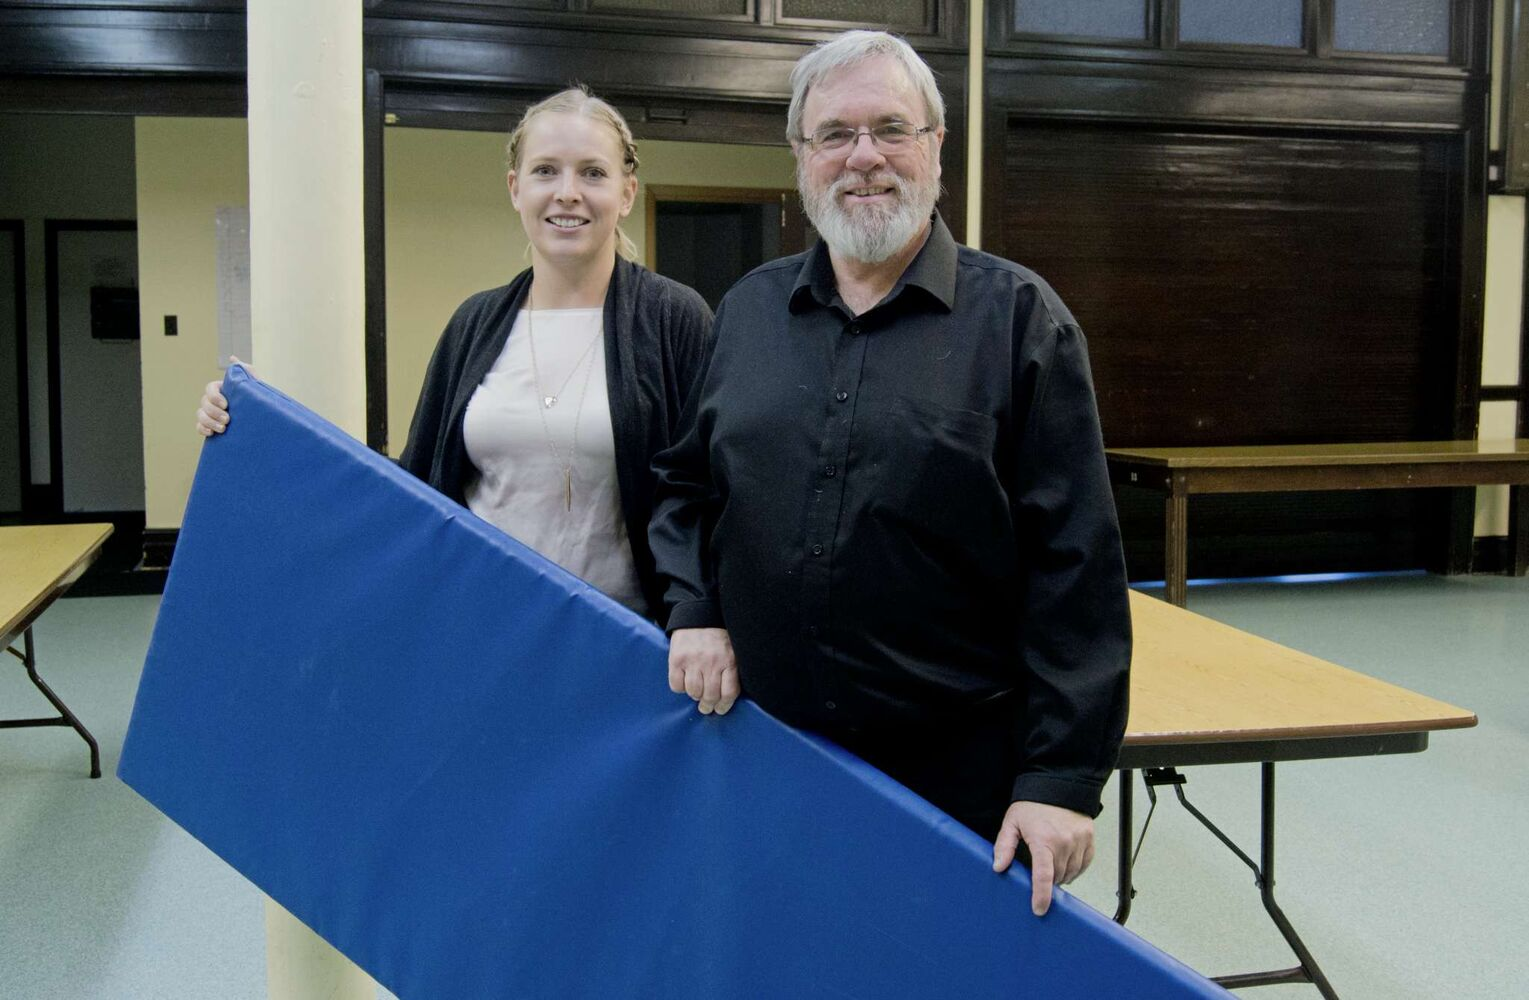 Tessa Blaikie Whitecloud and minister Bob Gilbert are leading a new initiative to serve Winnipeg's homeless at Augustine United Church called Just A Warm Sleep. (Danielle Da Silva - Sou'wester)